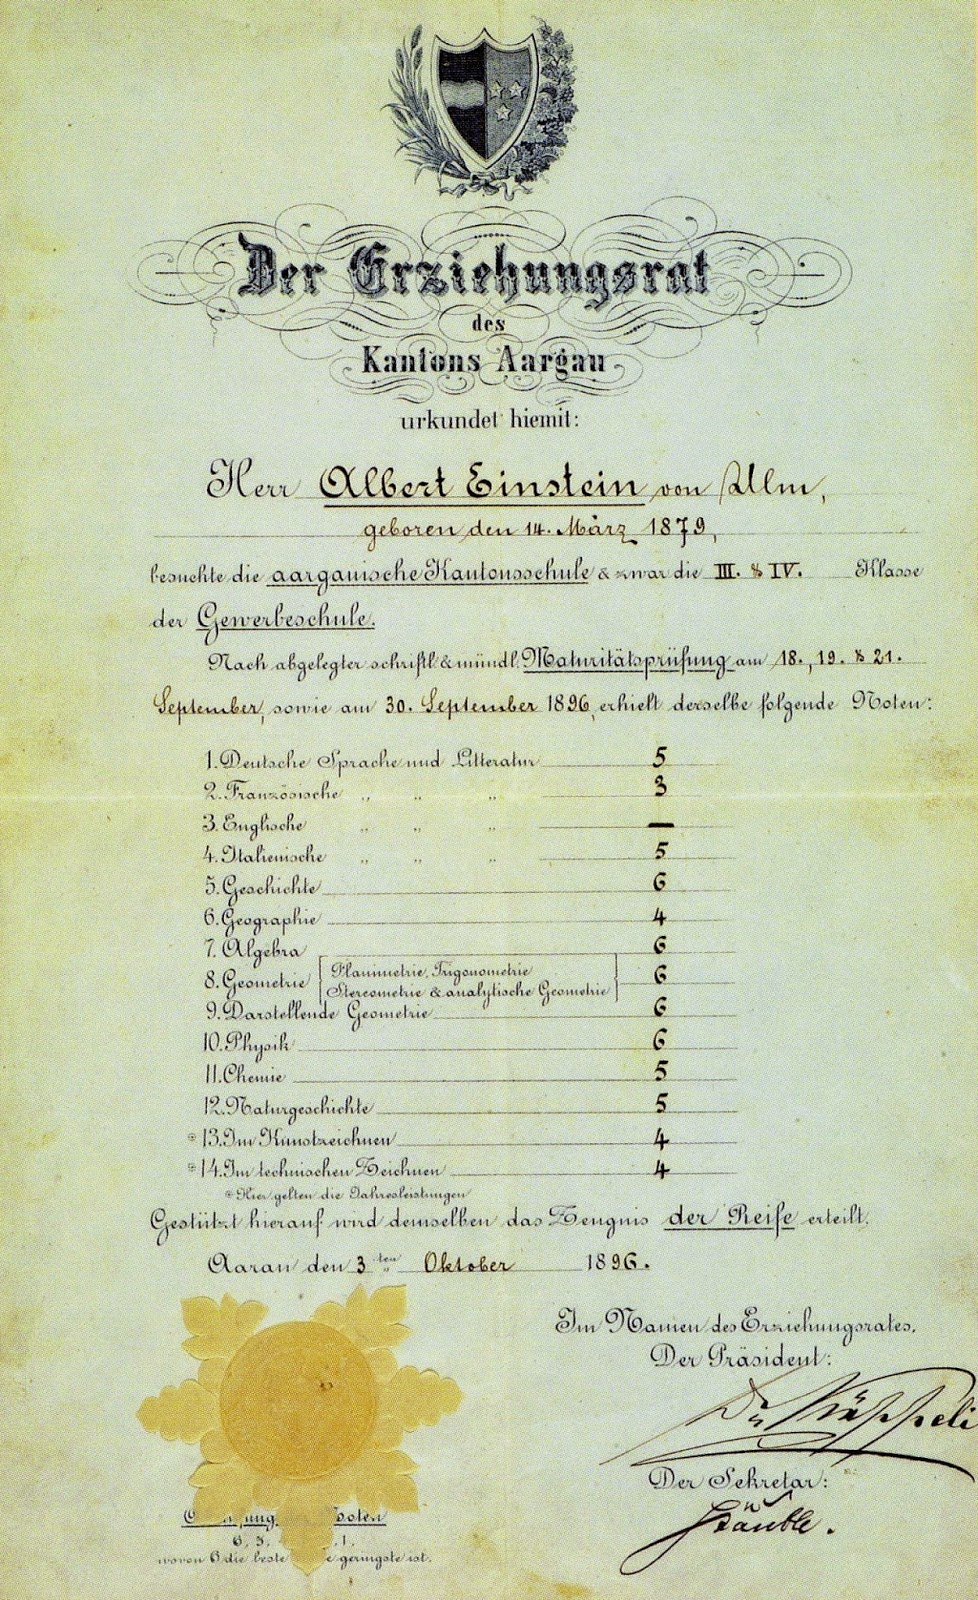 Ultimate Collection Of Rare Historical Photos. A Big Piece Of History (200 Pictures) - Albert Einstein's matriculation certificate